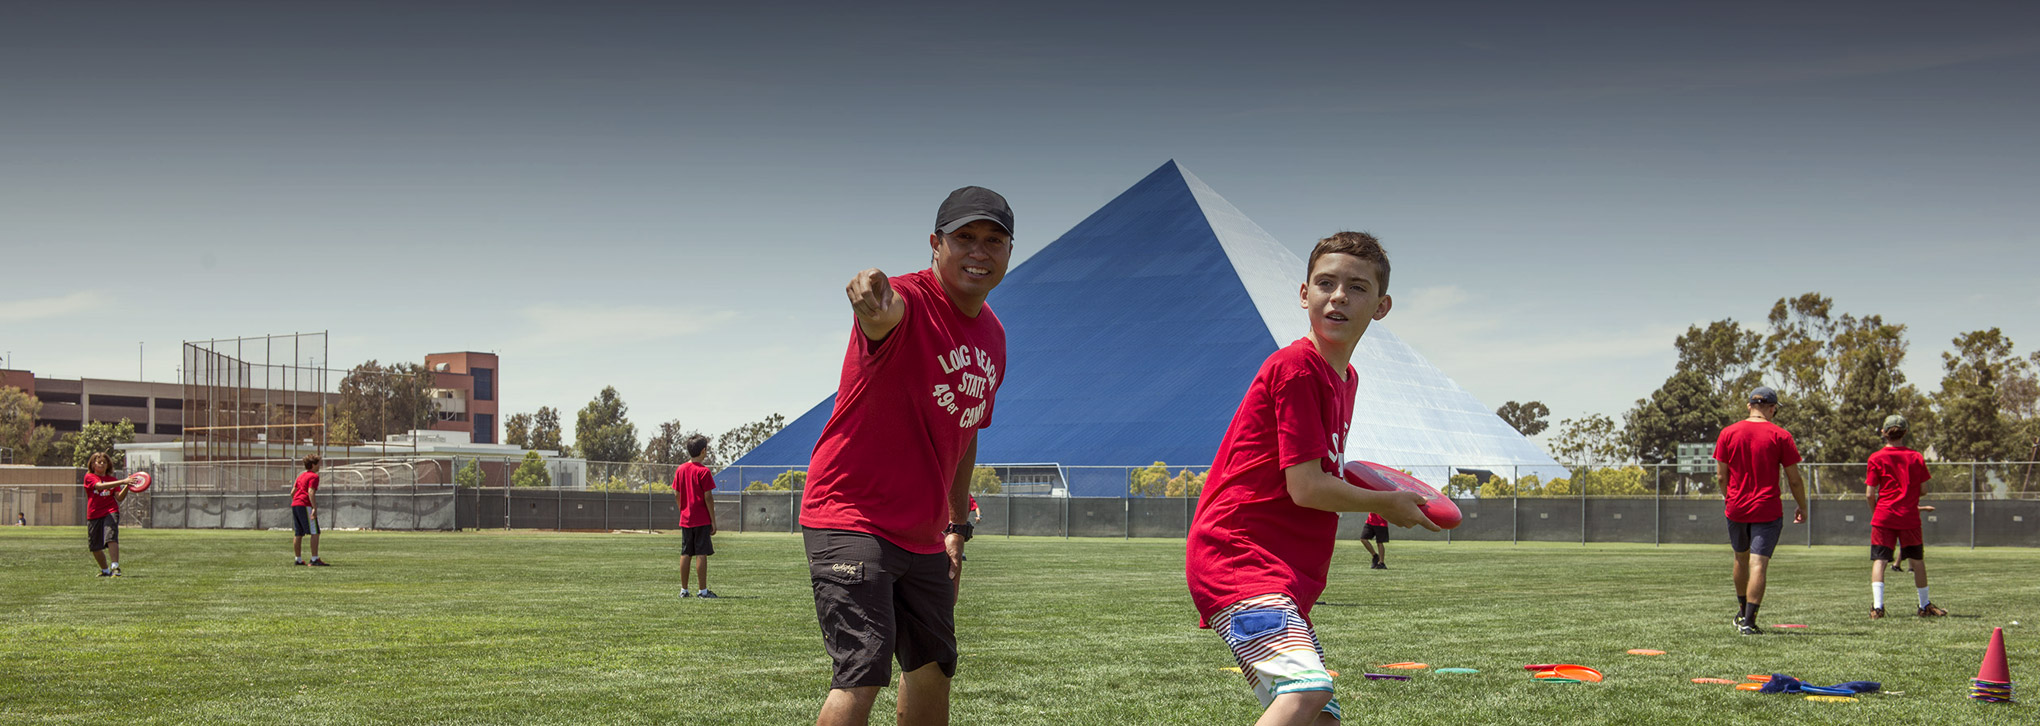 Page banner: young students playing ball on campus field, pyramid is seen in the background.